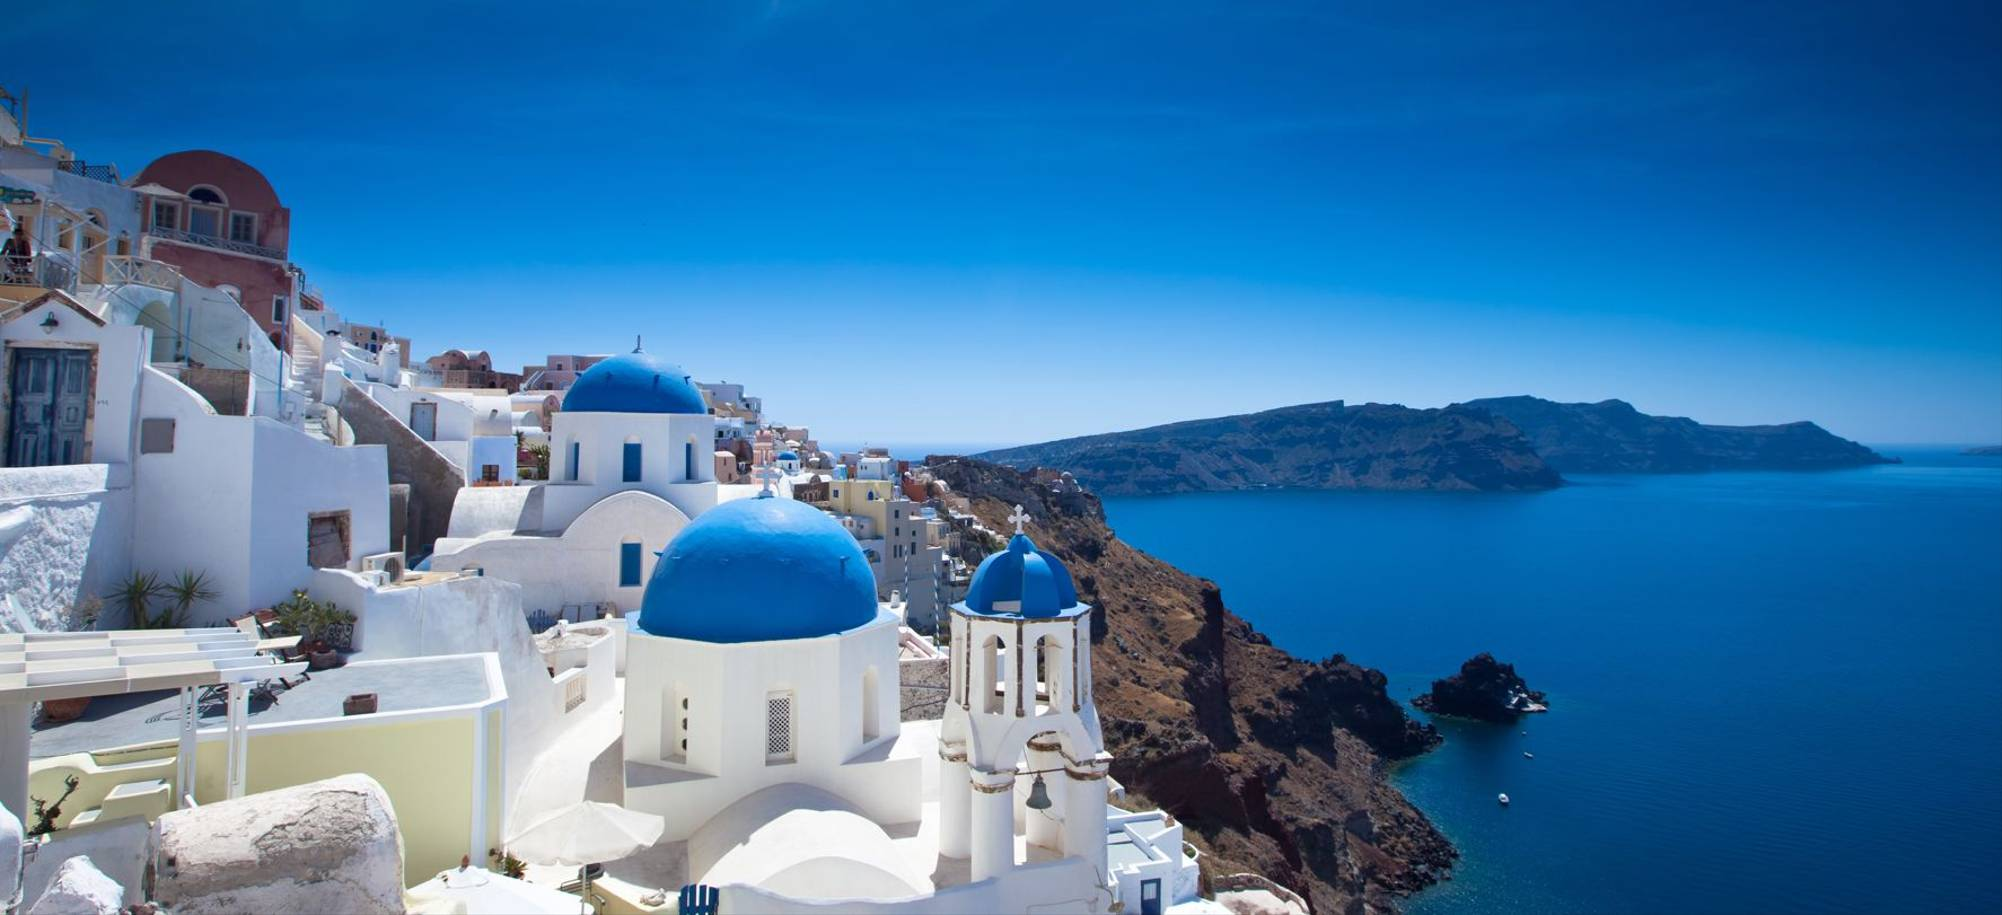 Santorini   Houses Along The Coast    Itinerary Desktop